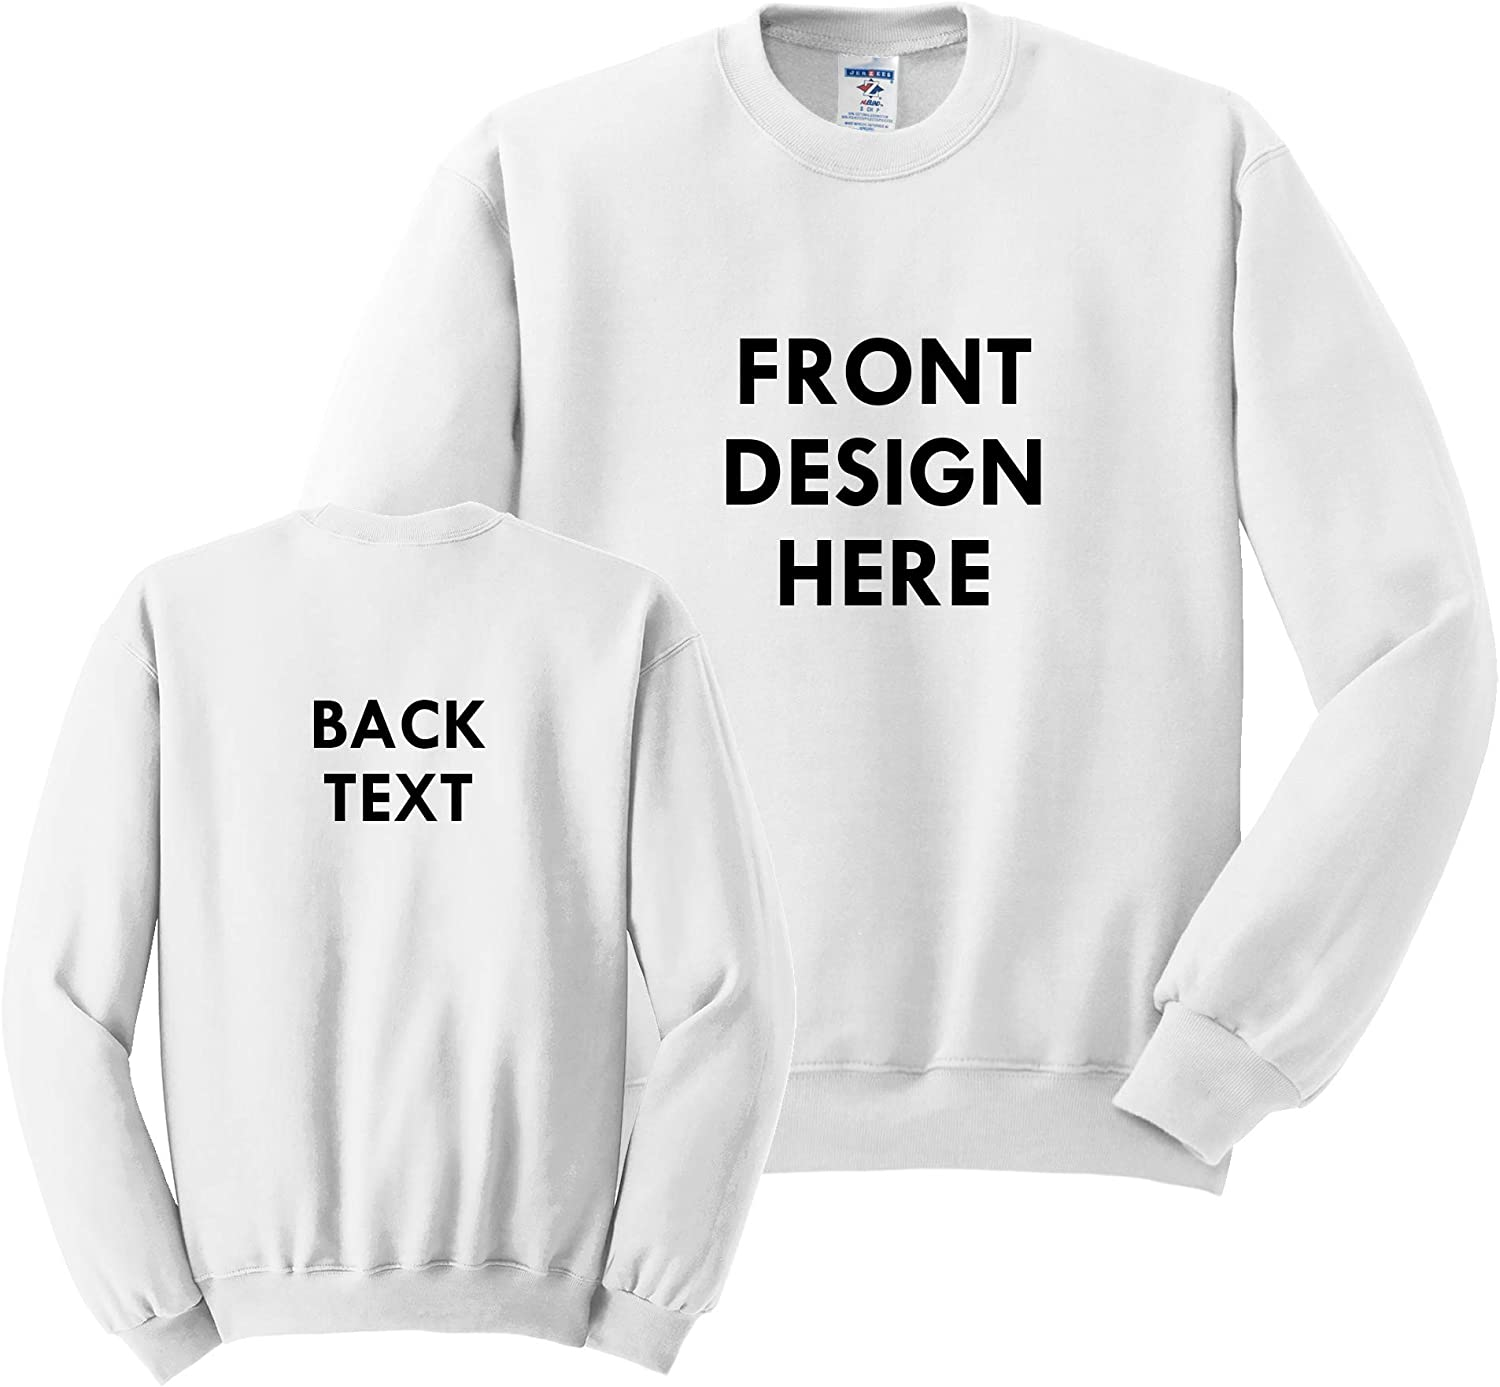 INK STITCH Unisex Jerzees Custom Design Your Own Warm Crewneck Sweatshirt 17 Colors